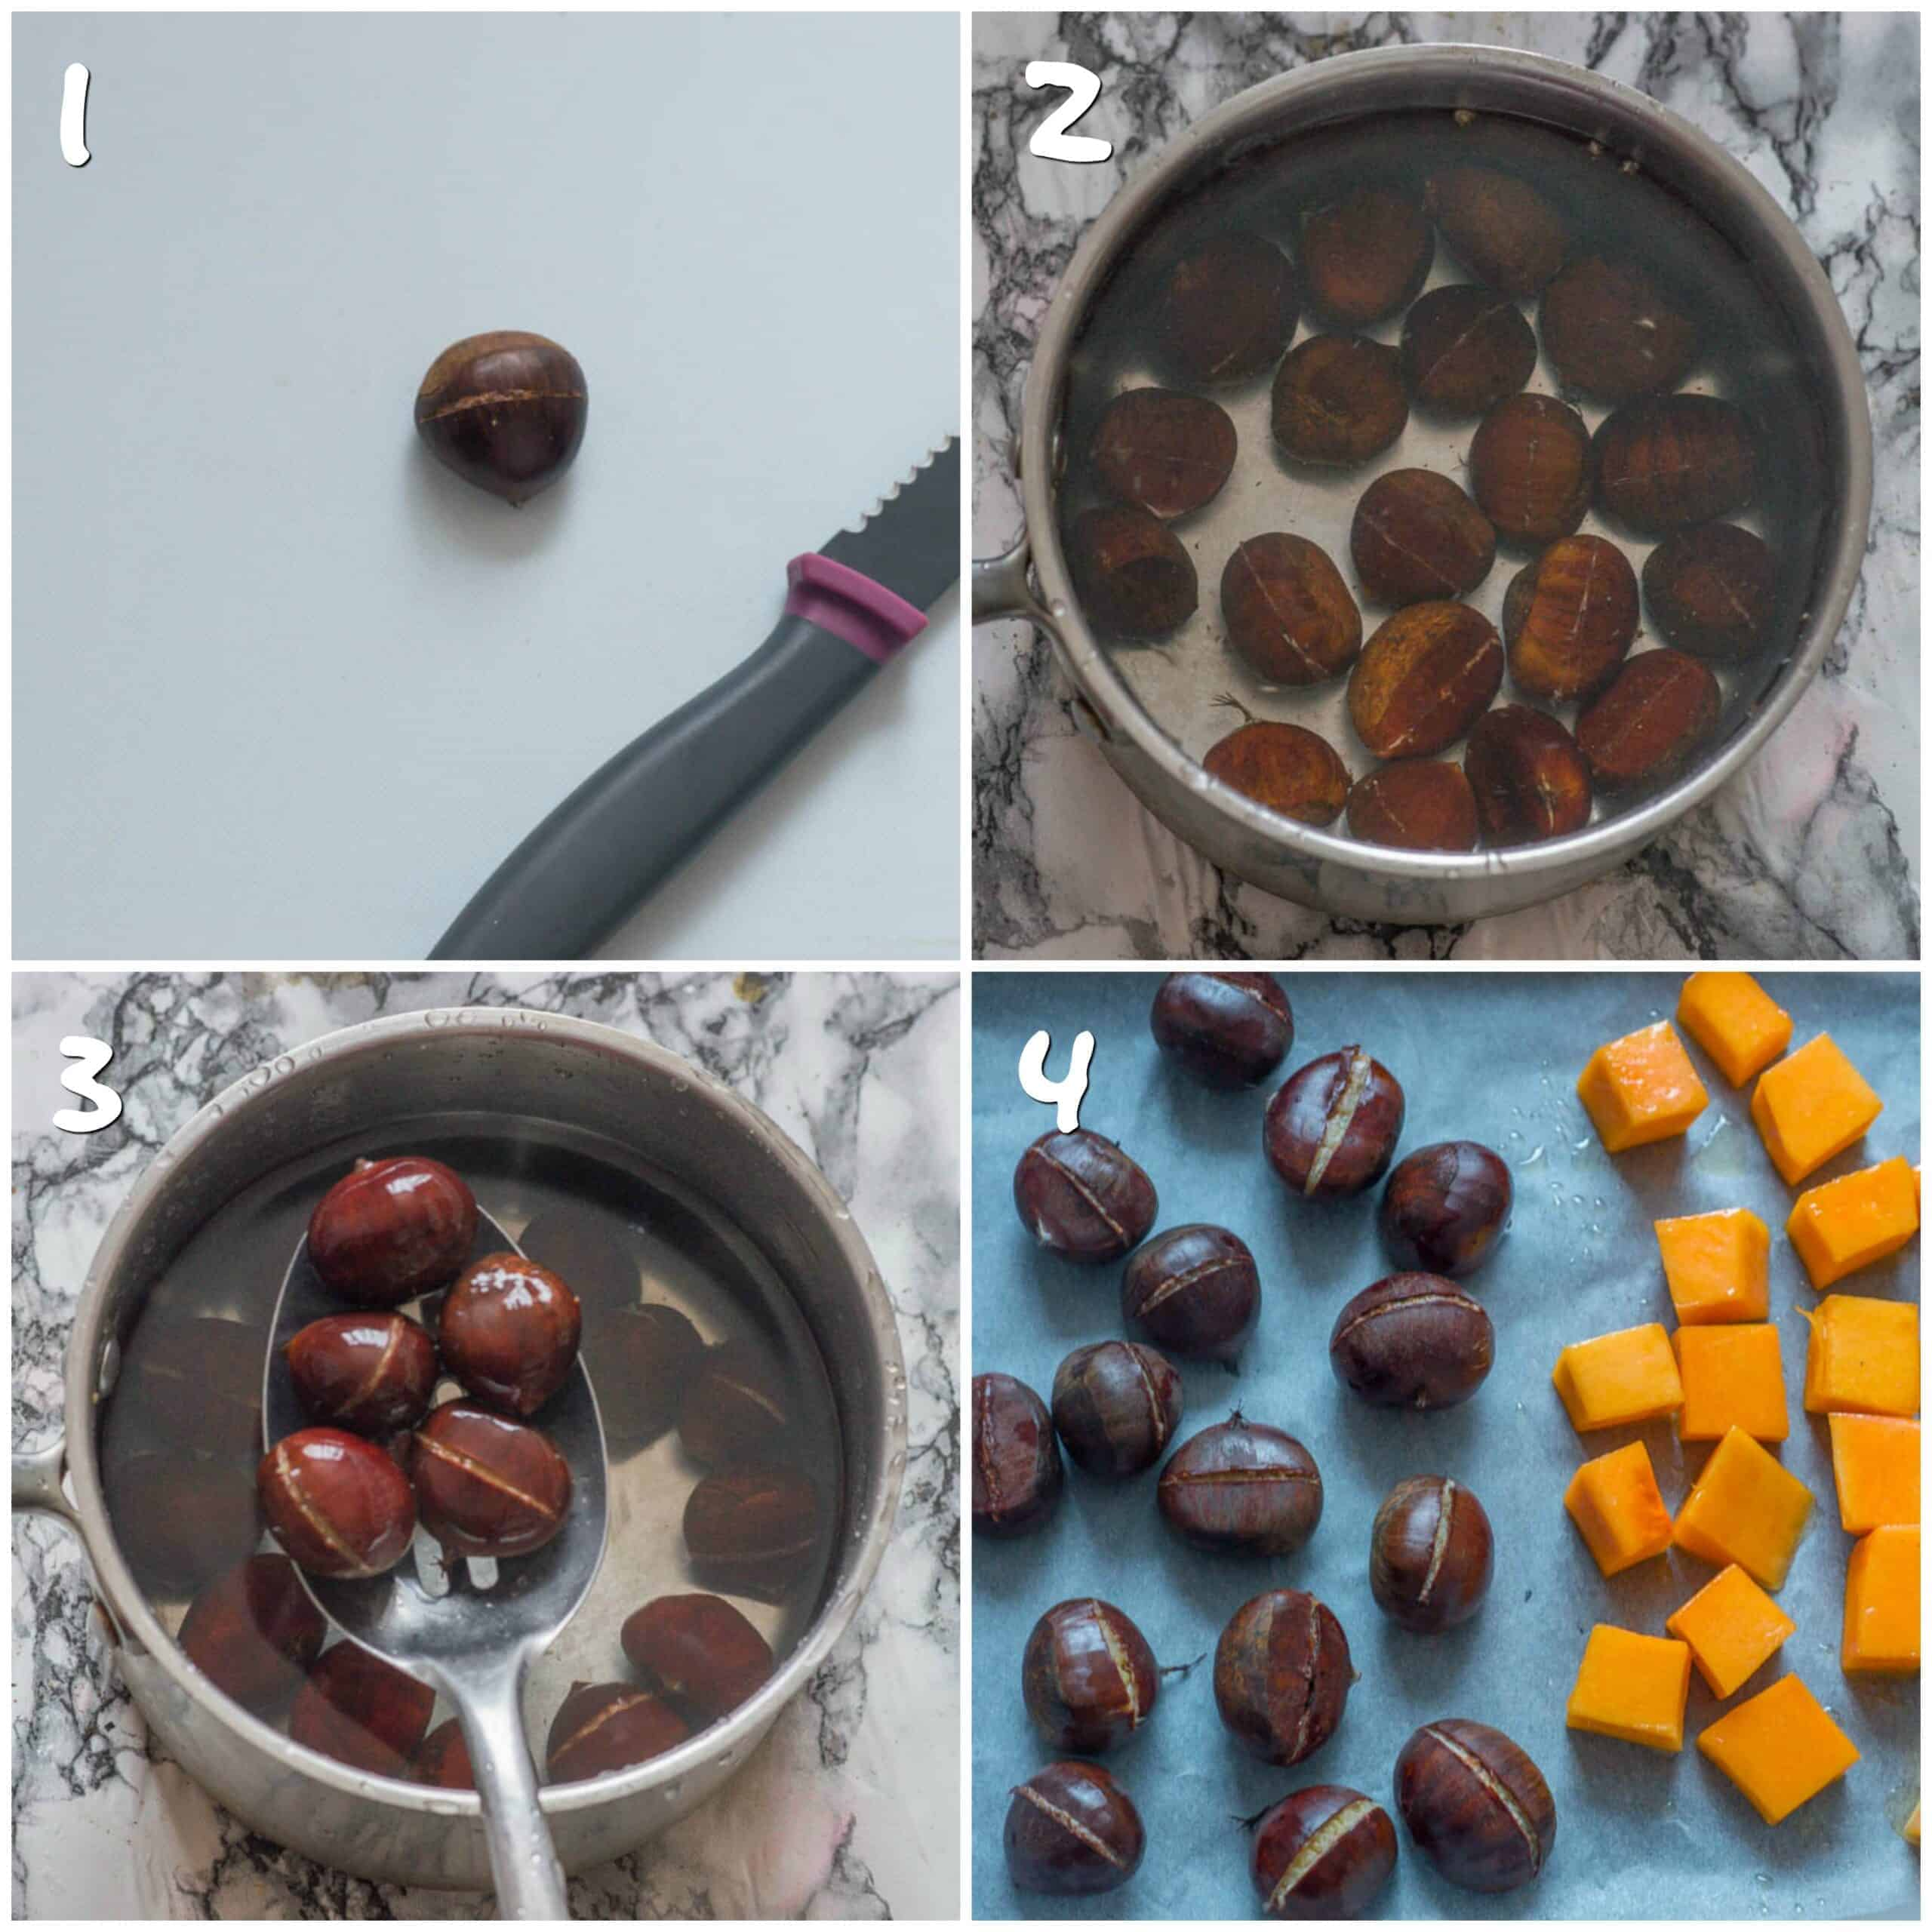 steps 1-4 boiling and roasting chestnuts